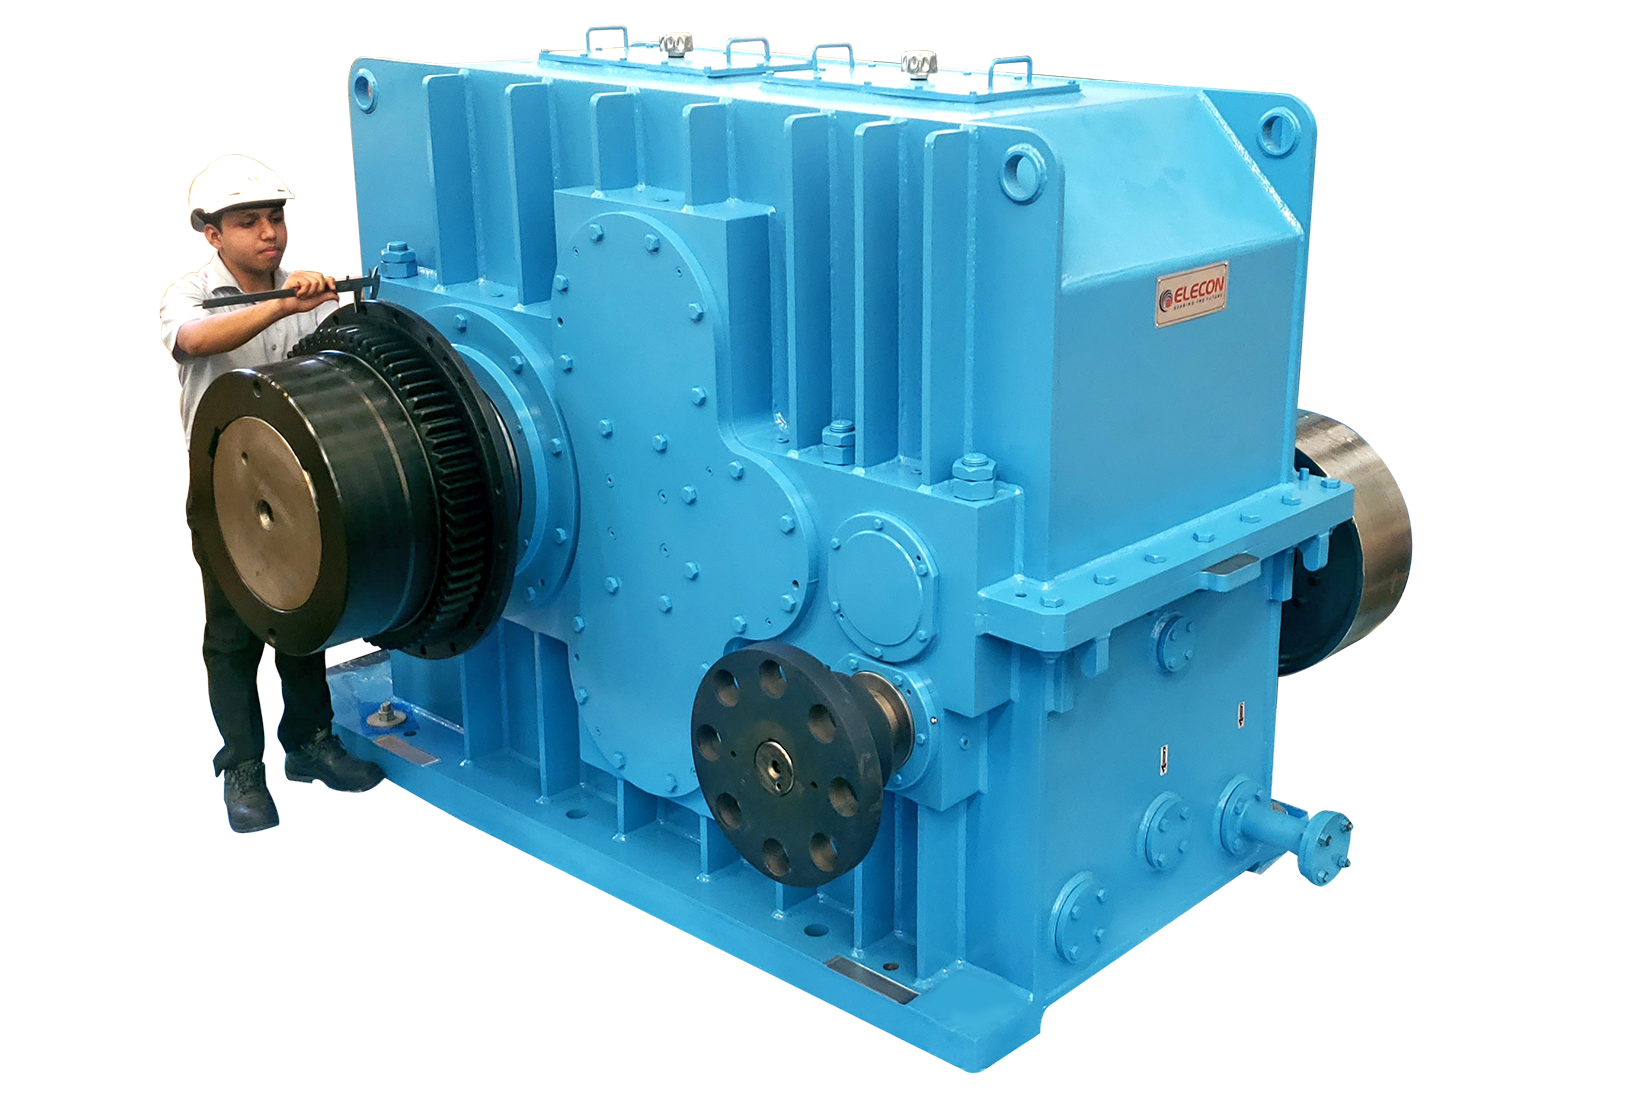 elecon product DUAL TANDEM GEARBOX